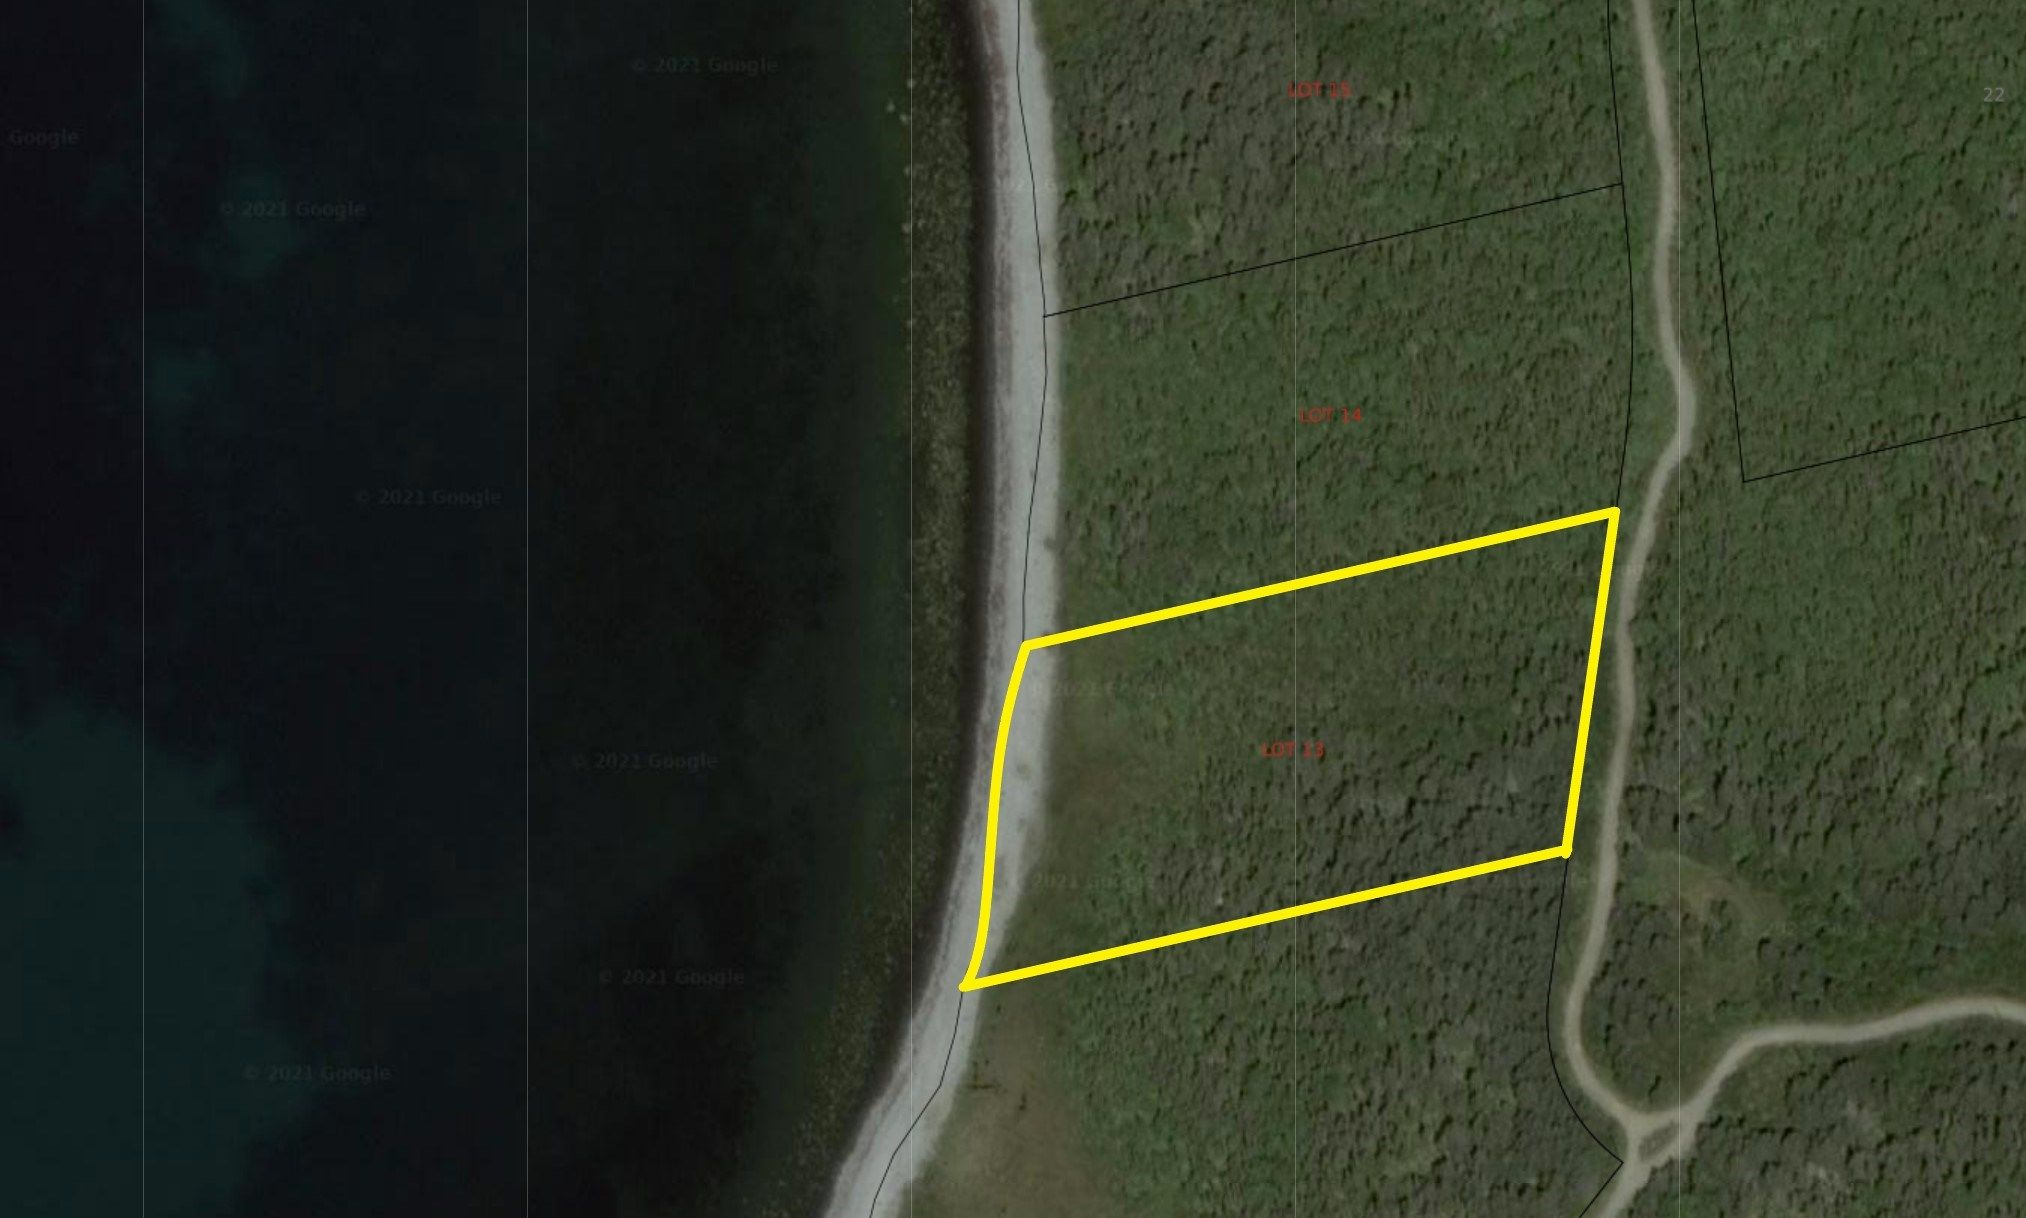 Main Photo: Lot 13 Youngs Road in East Green Harbour: 407-Shelburne County Vacant Land for sale (South Shore)  : MLS®# 202105634